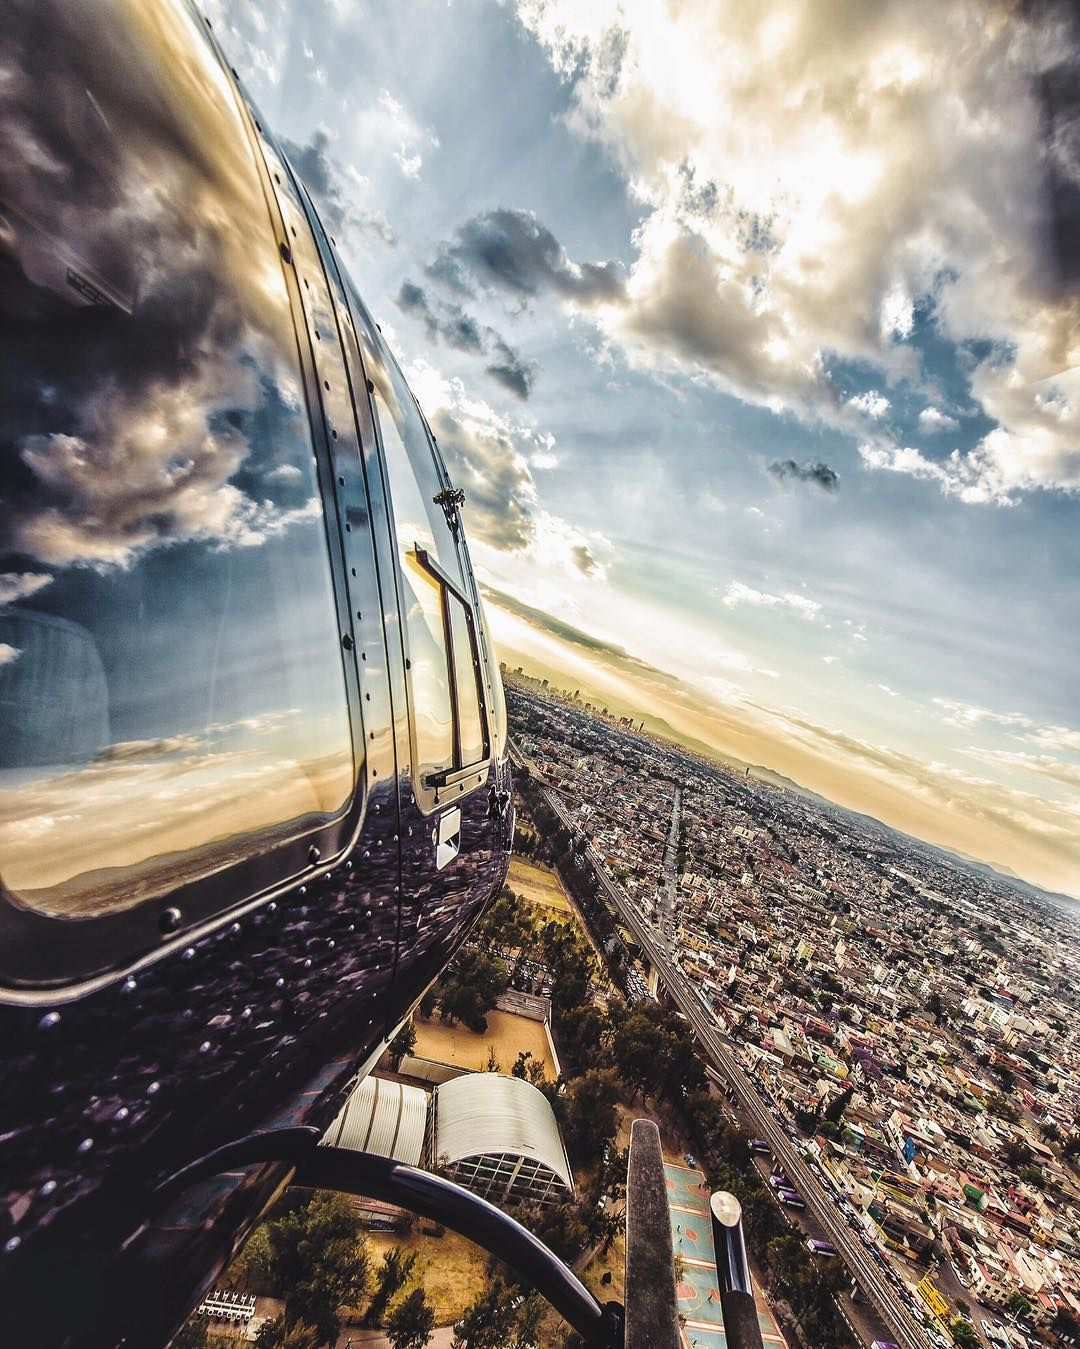 """Photographer auf Instagram: """"Don't let the fear of falling keep you from flying.  @moodygrams takeover #MG200k"""""""